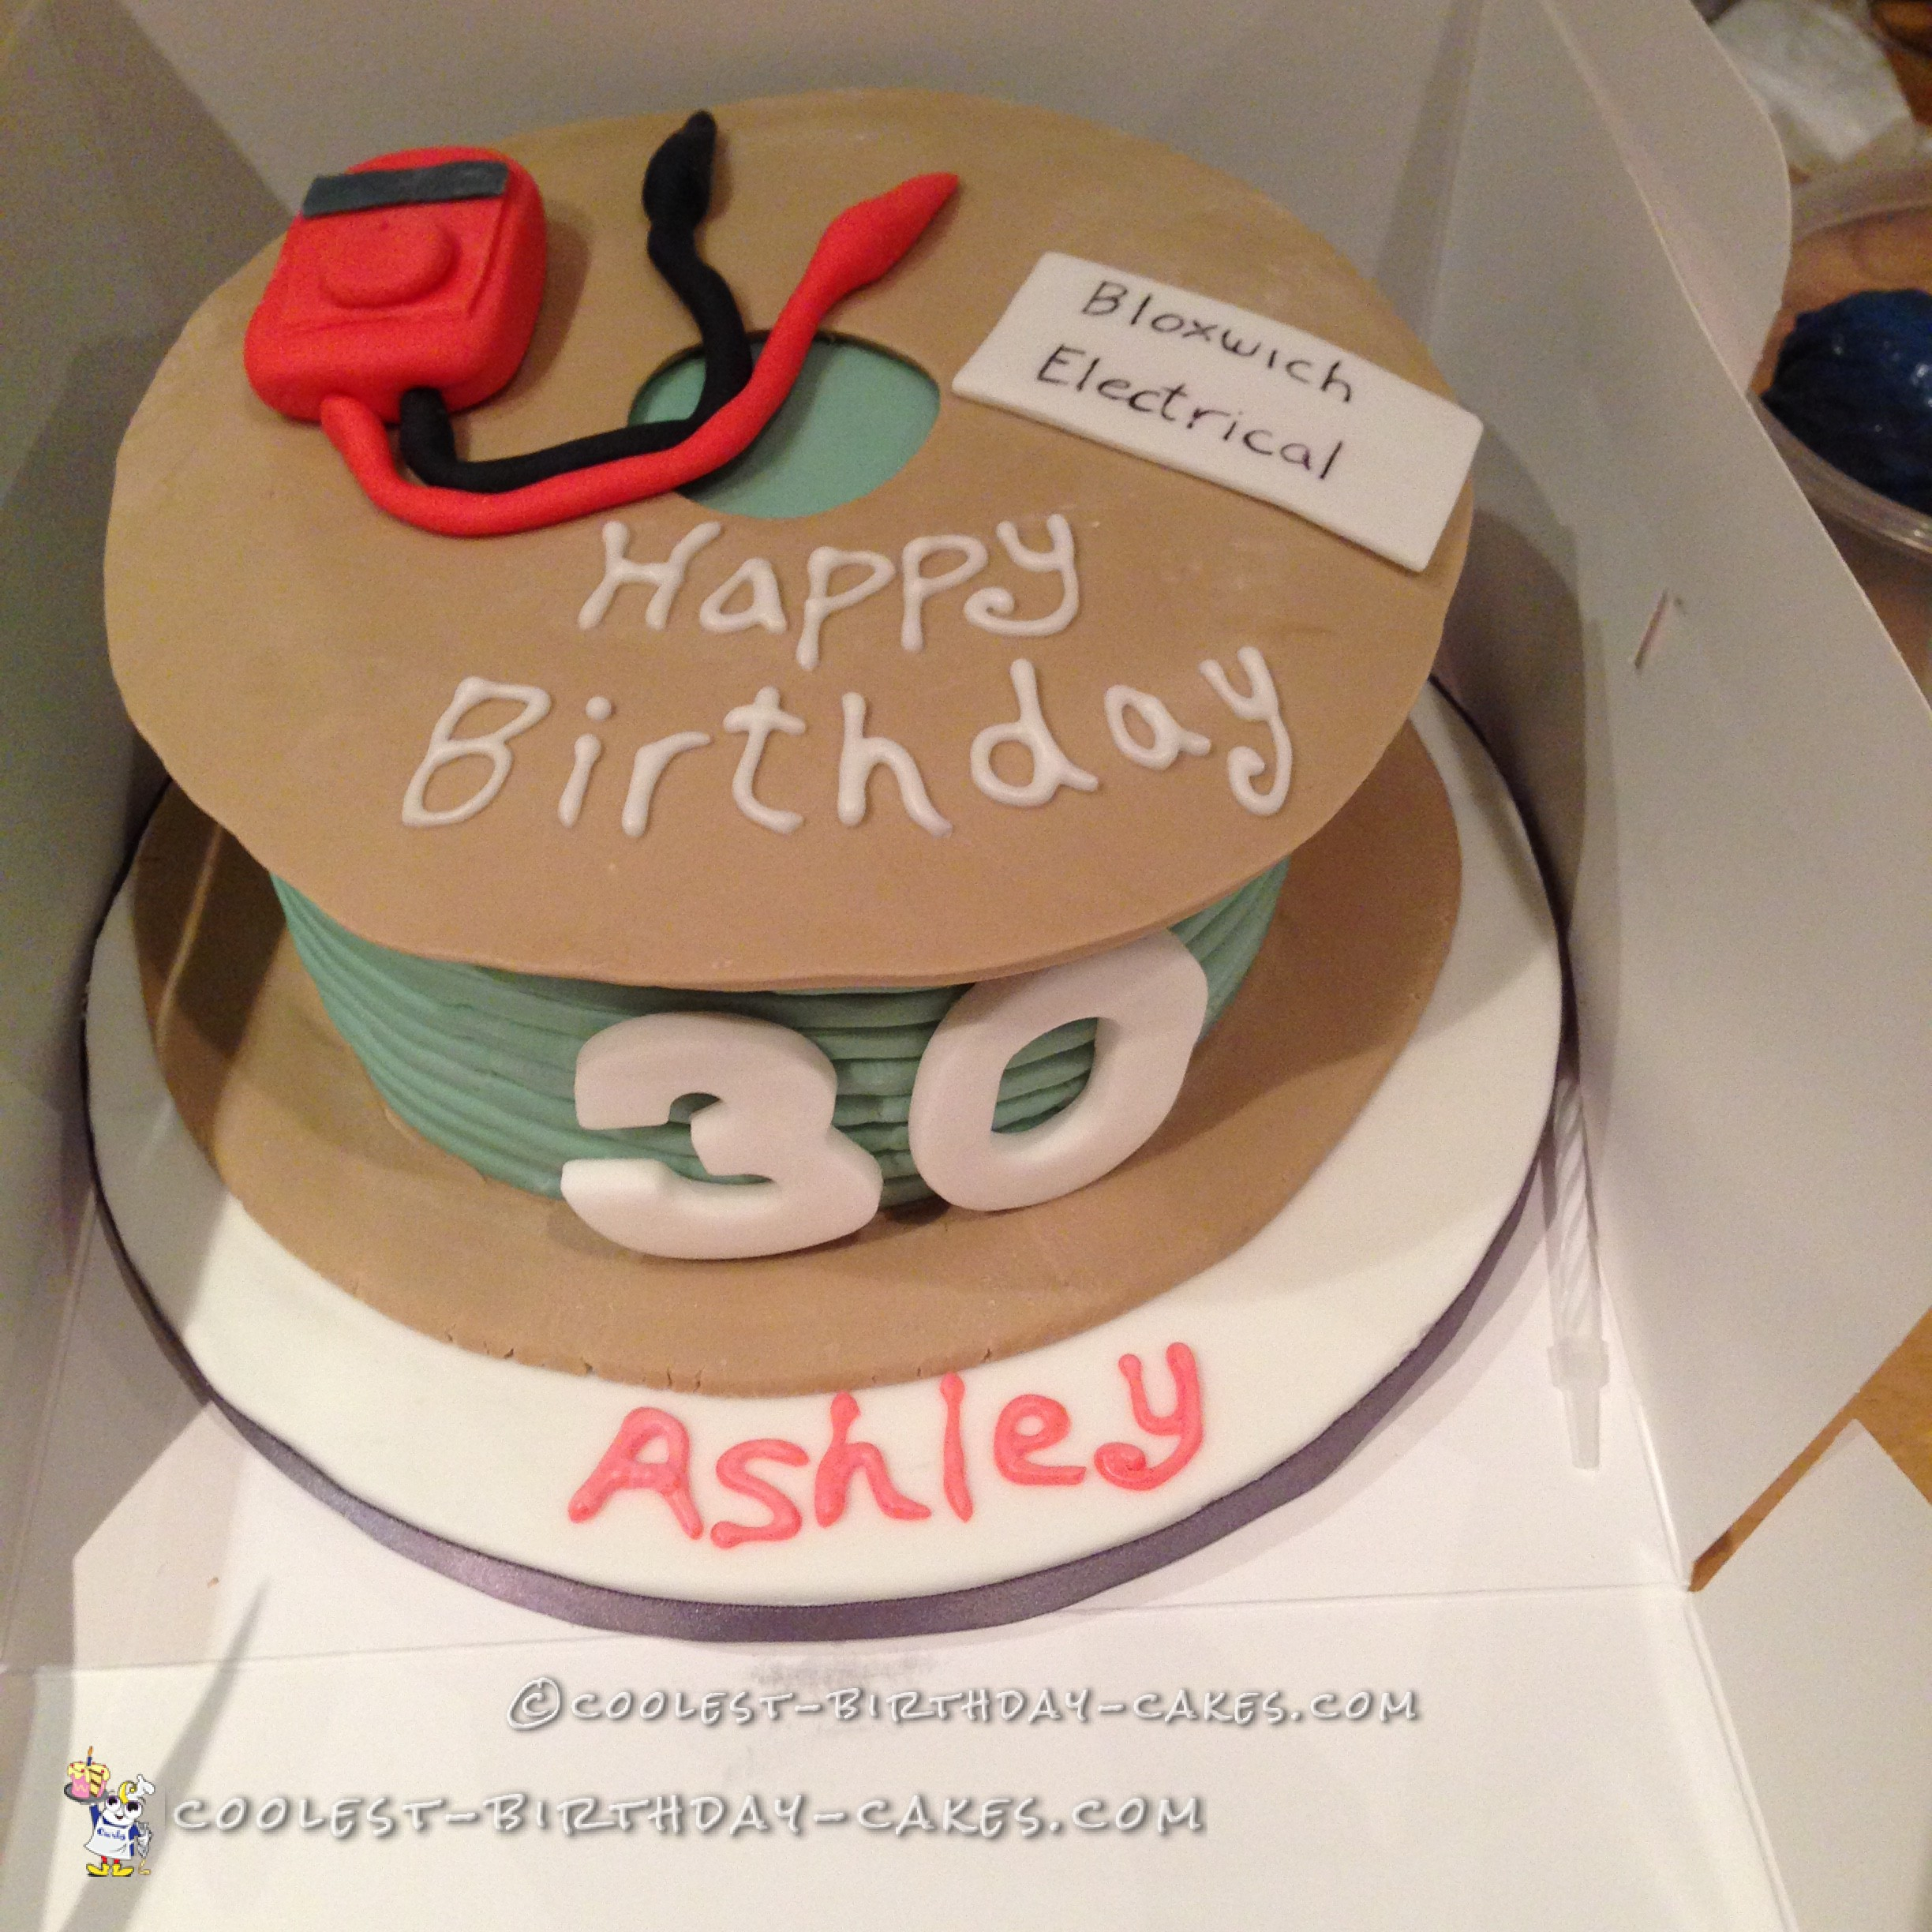 Awesome 30Th Birthday Cakes Cool Electrical Cable Cake